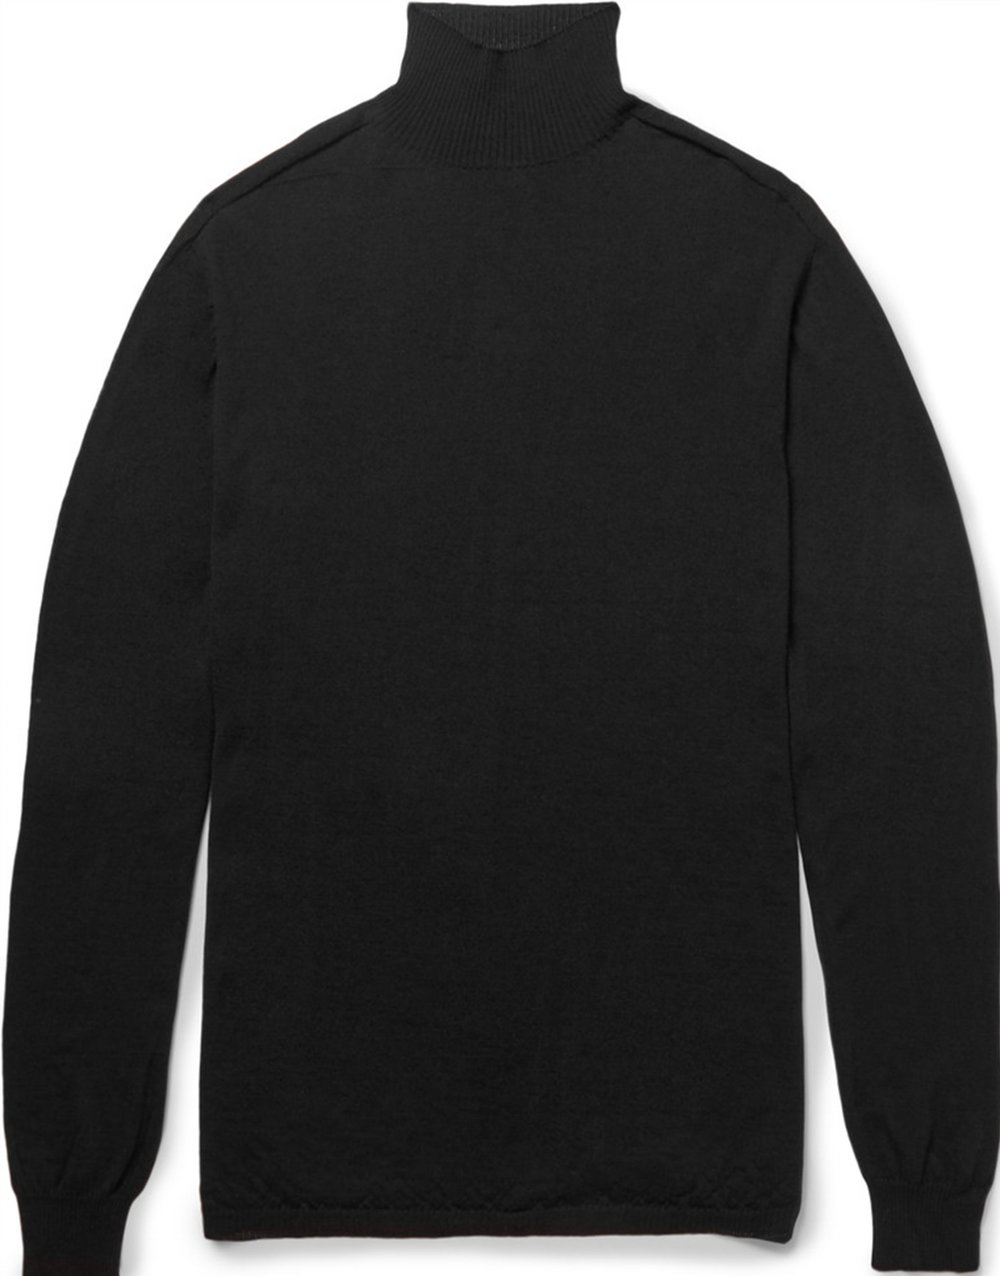 Rick Owens Oversized Wool Rollneck Sweater at Mr. Porter, $550